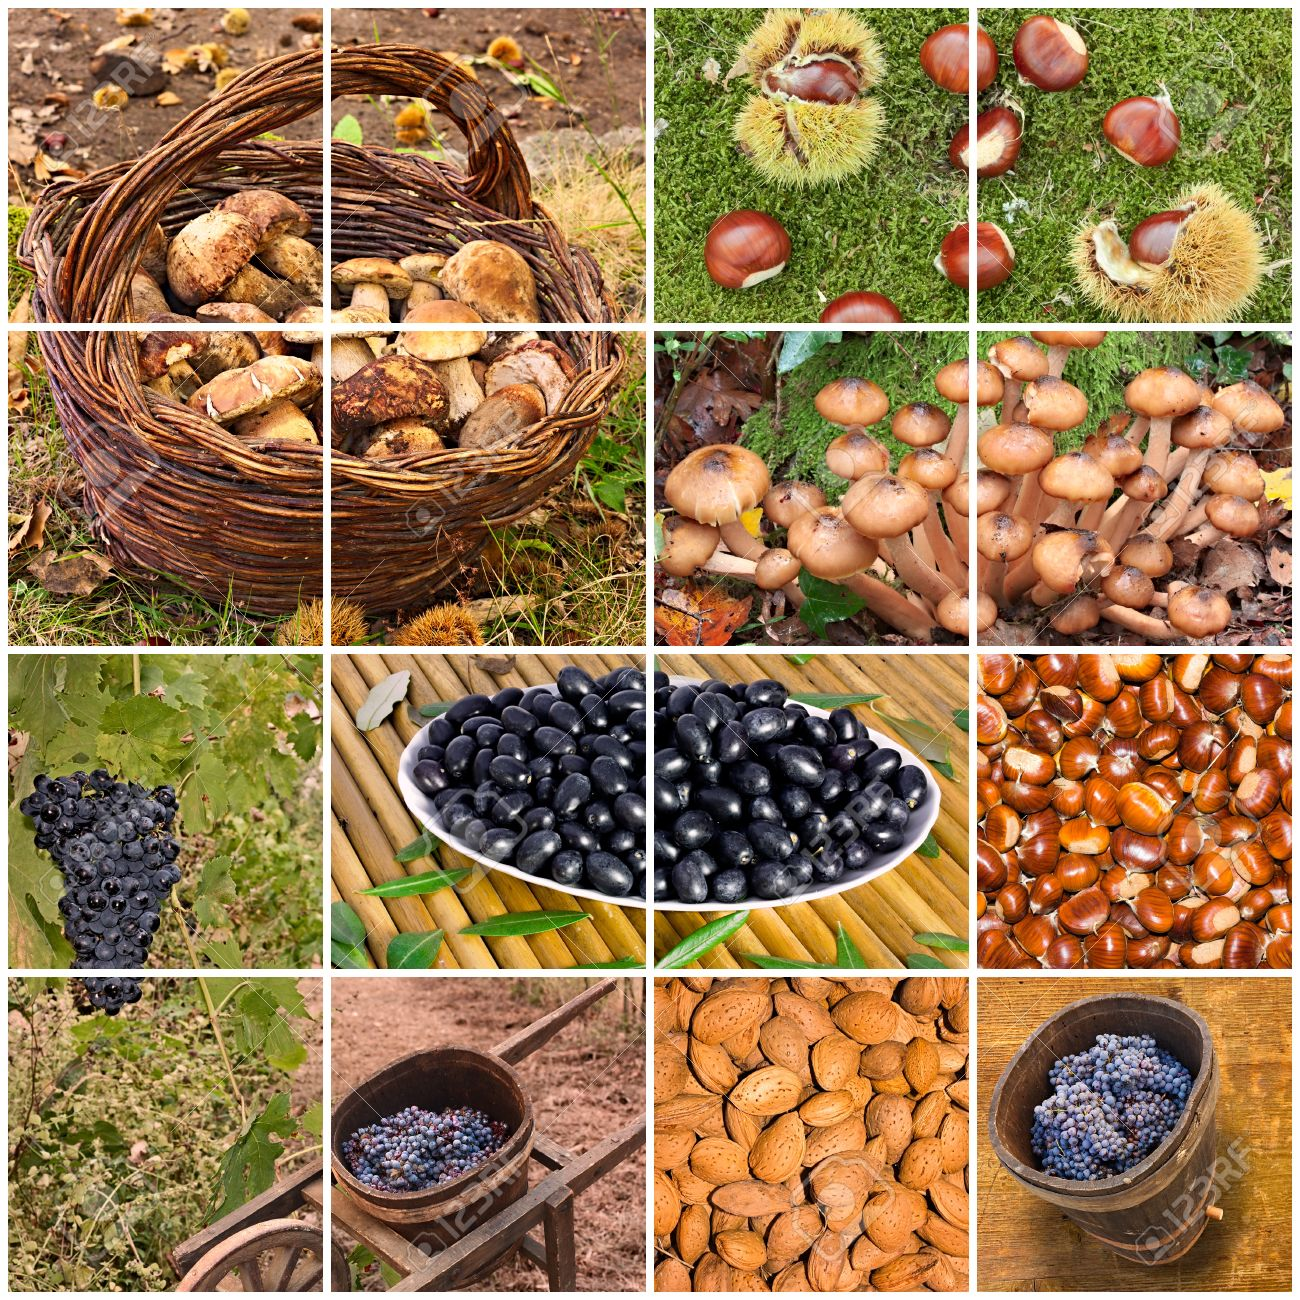 collage of the italian autumnal fruits  mushrooms, grapes, chestnuts, almonds, olives - typical products of the autumn in Tuscany, Italy Stock Photo - 15629599